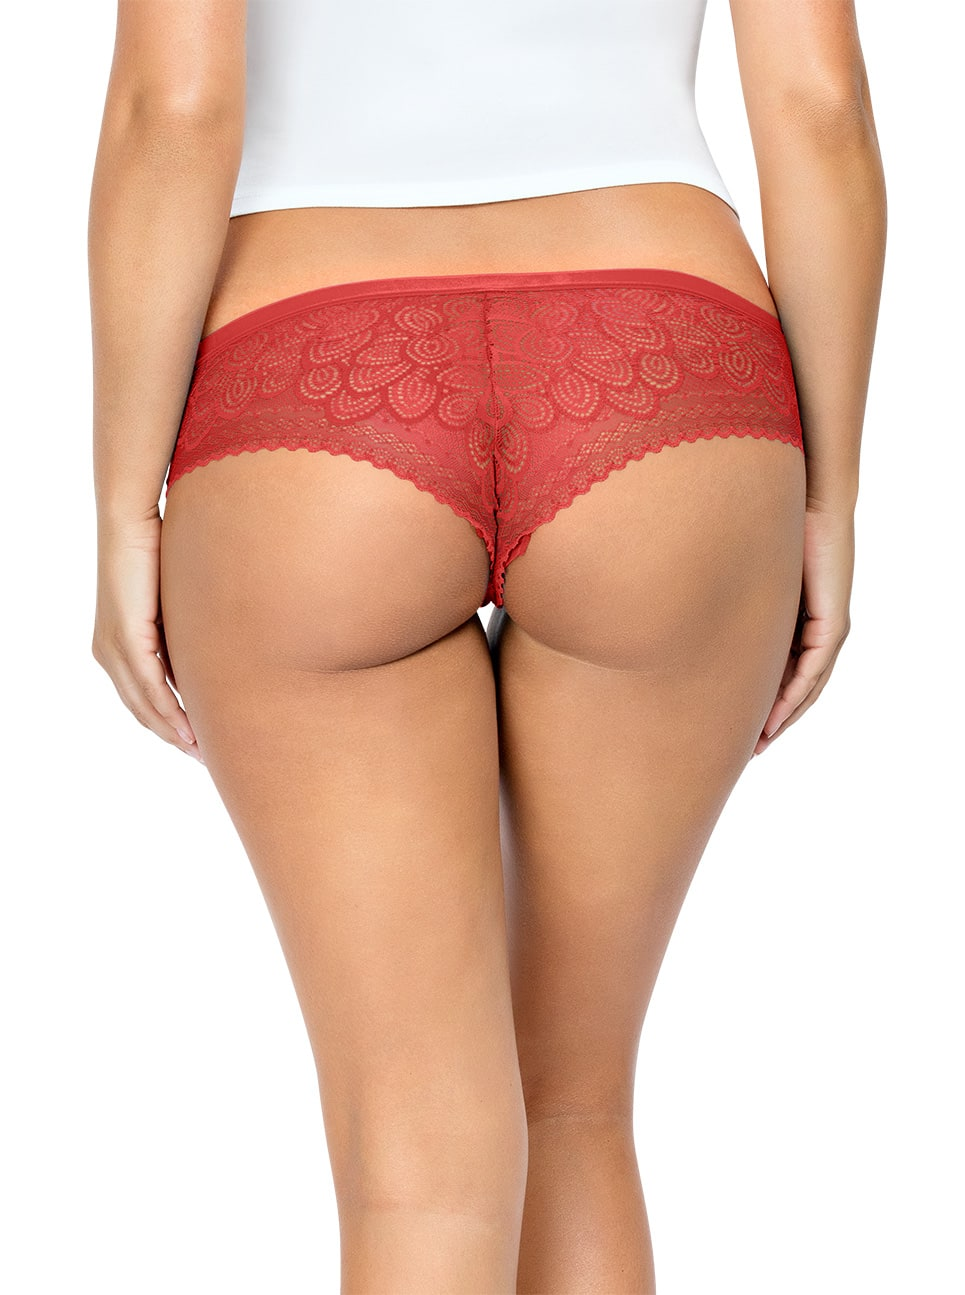 PARFAIT ParfaitPanty SoGlam HipsterPP502 Scarlette Back close - Parfait Panty So Glam Hipster - Scarlette - PP502